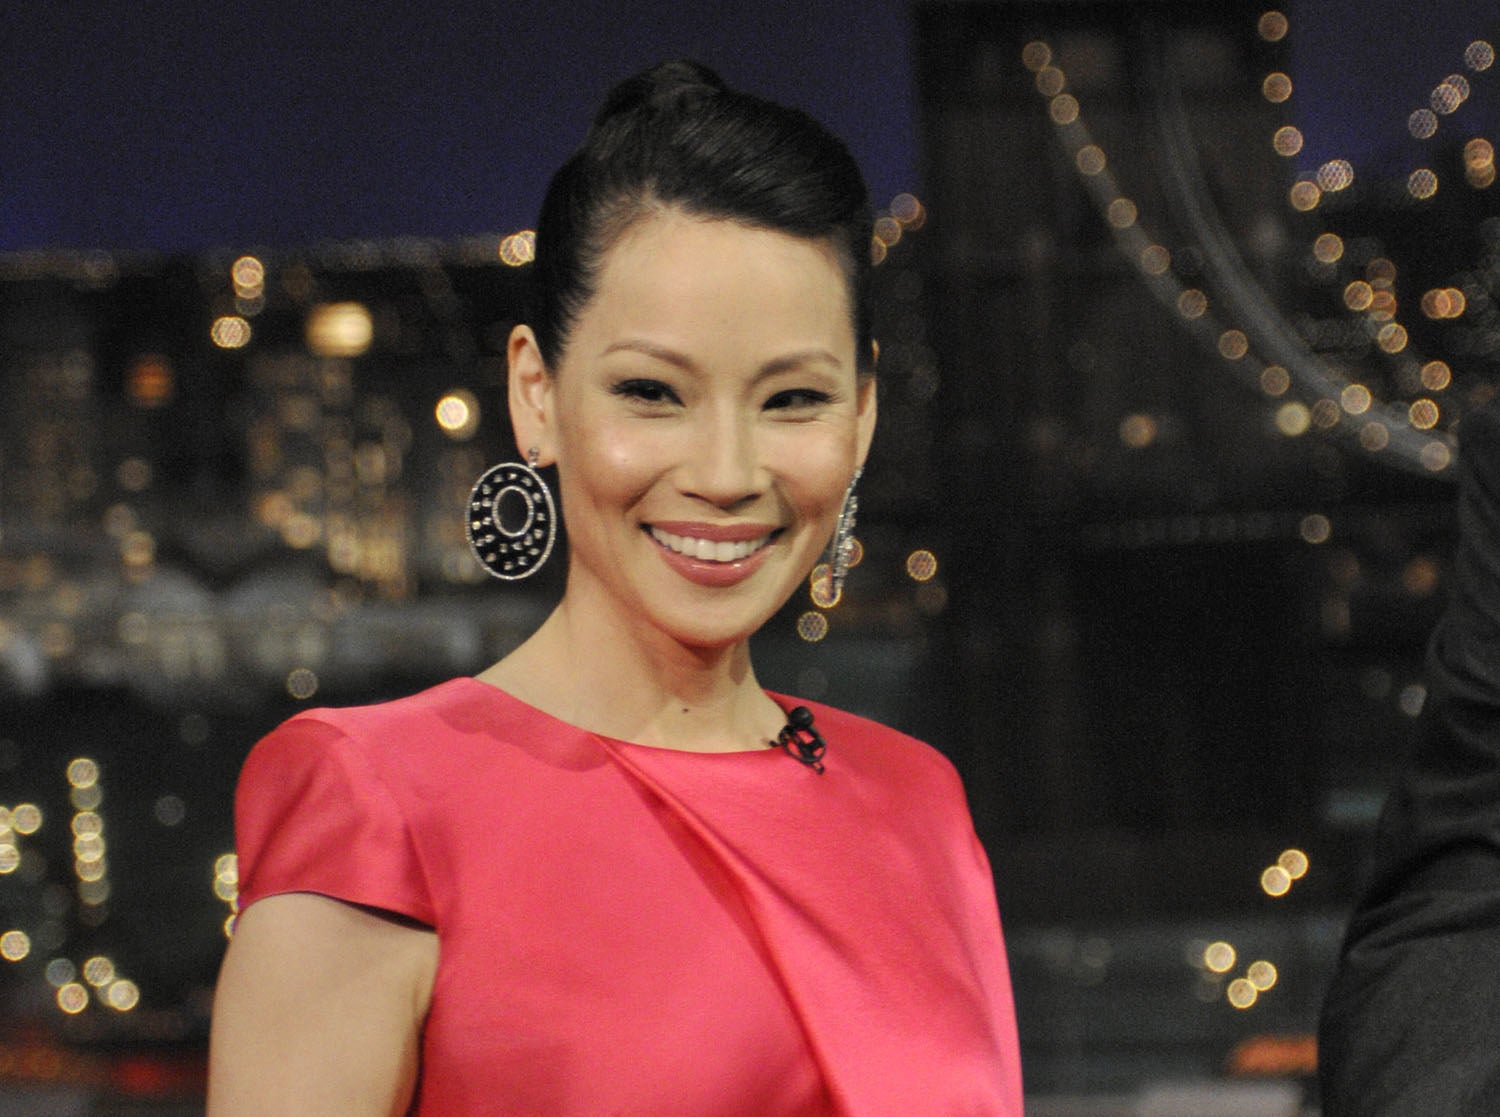 A smiling Lucy Liu wearing large earrings and a short-sleeved dress